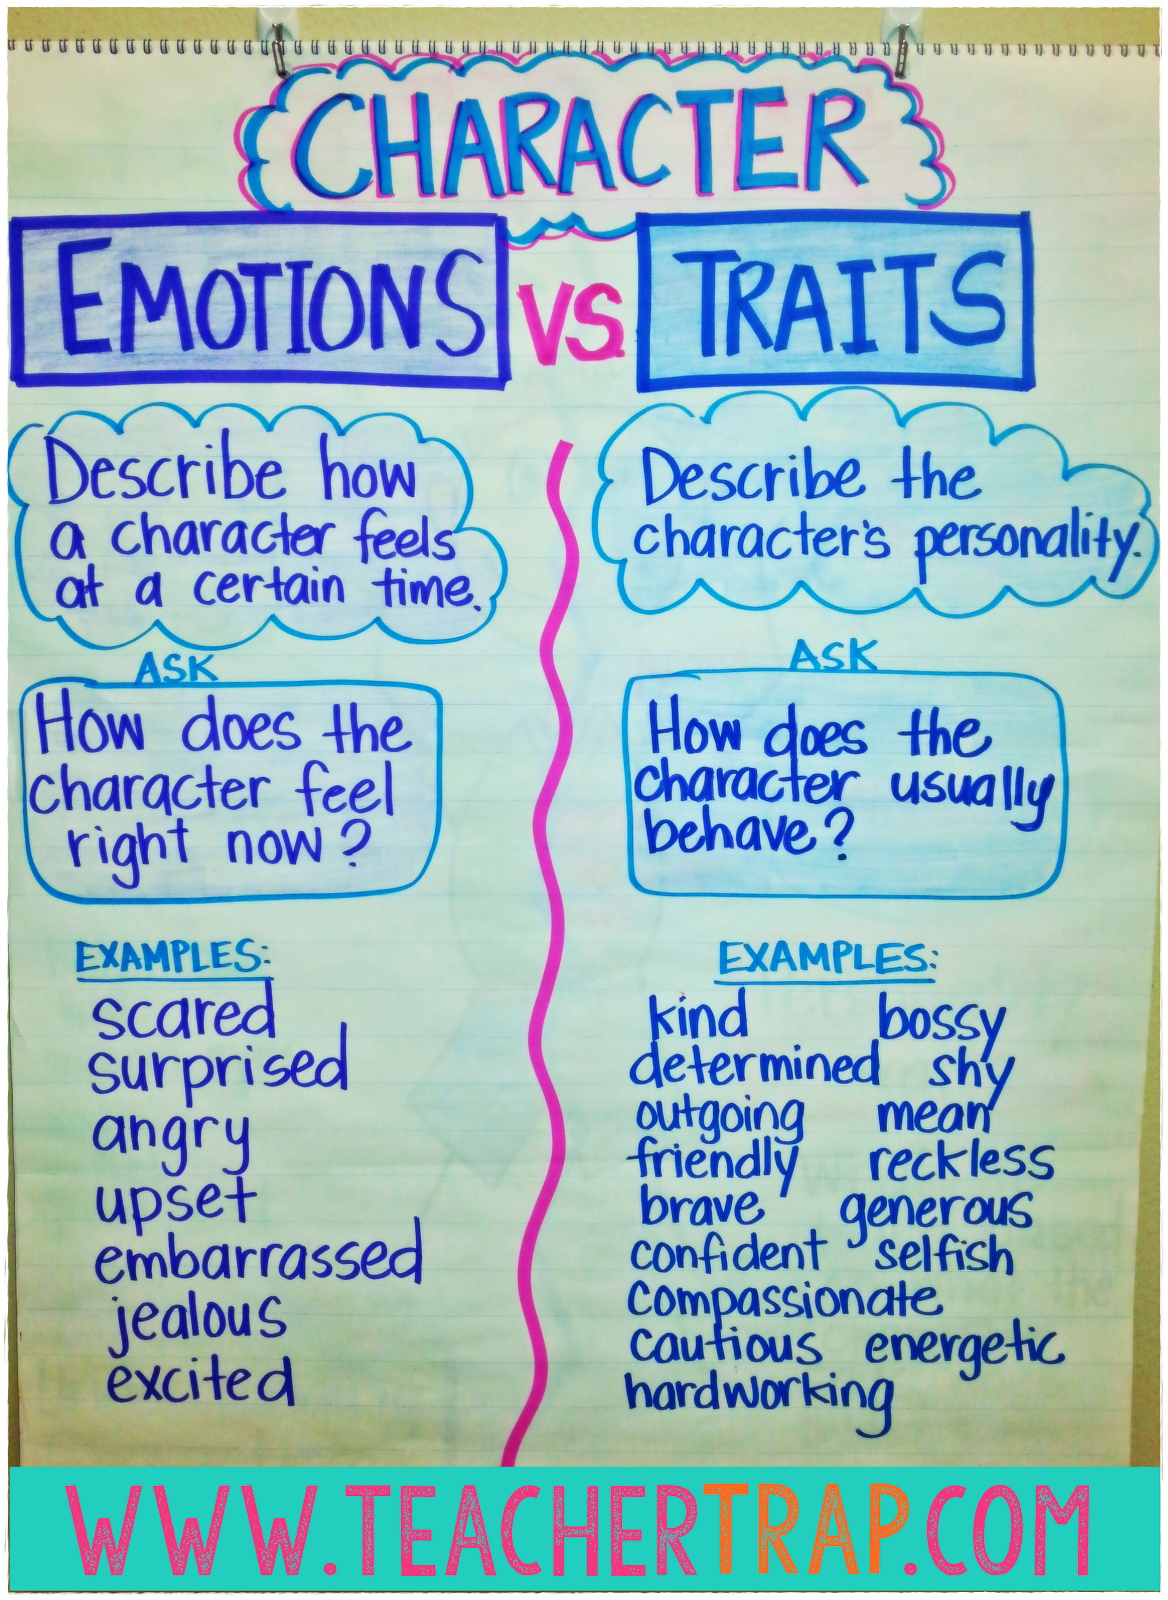 3 Secrets For Teaching Character Traits